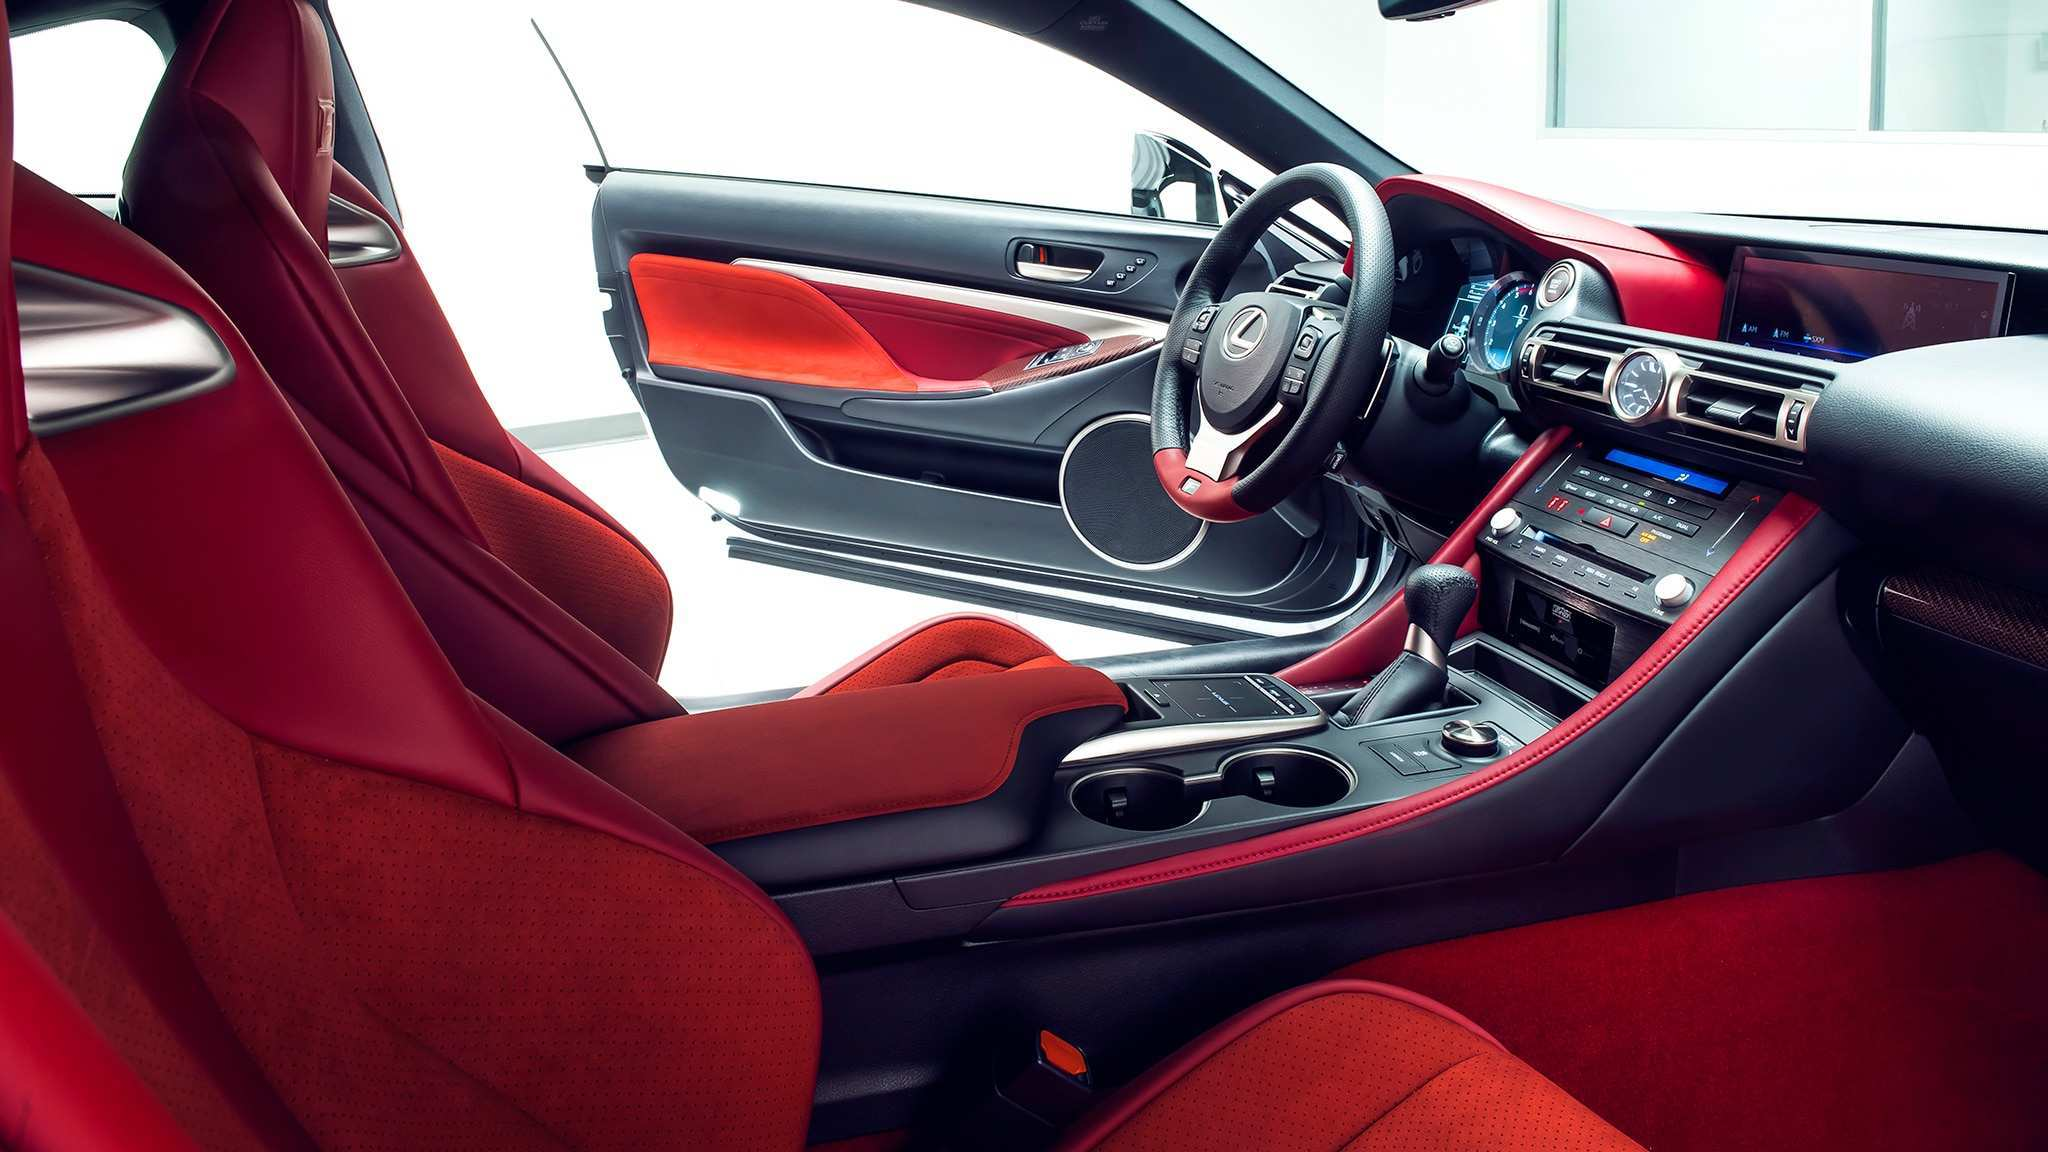 41 Great 2020 Lexus Rc F Track Edition Specs New Concept with 2020 Lexus Rc F Track Edition Specs